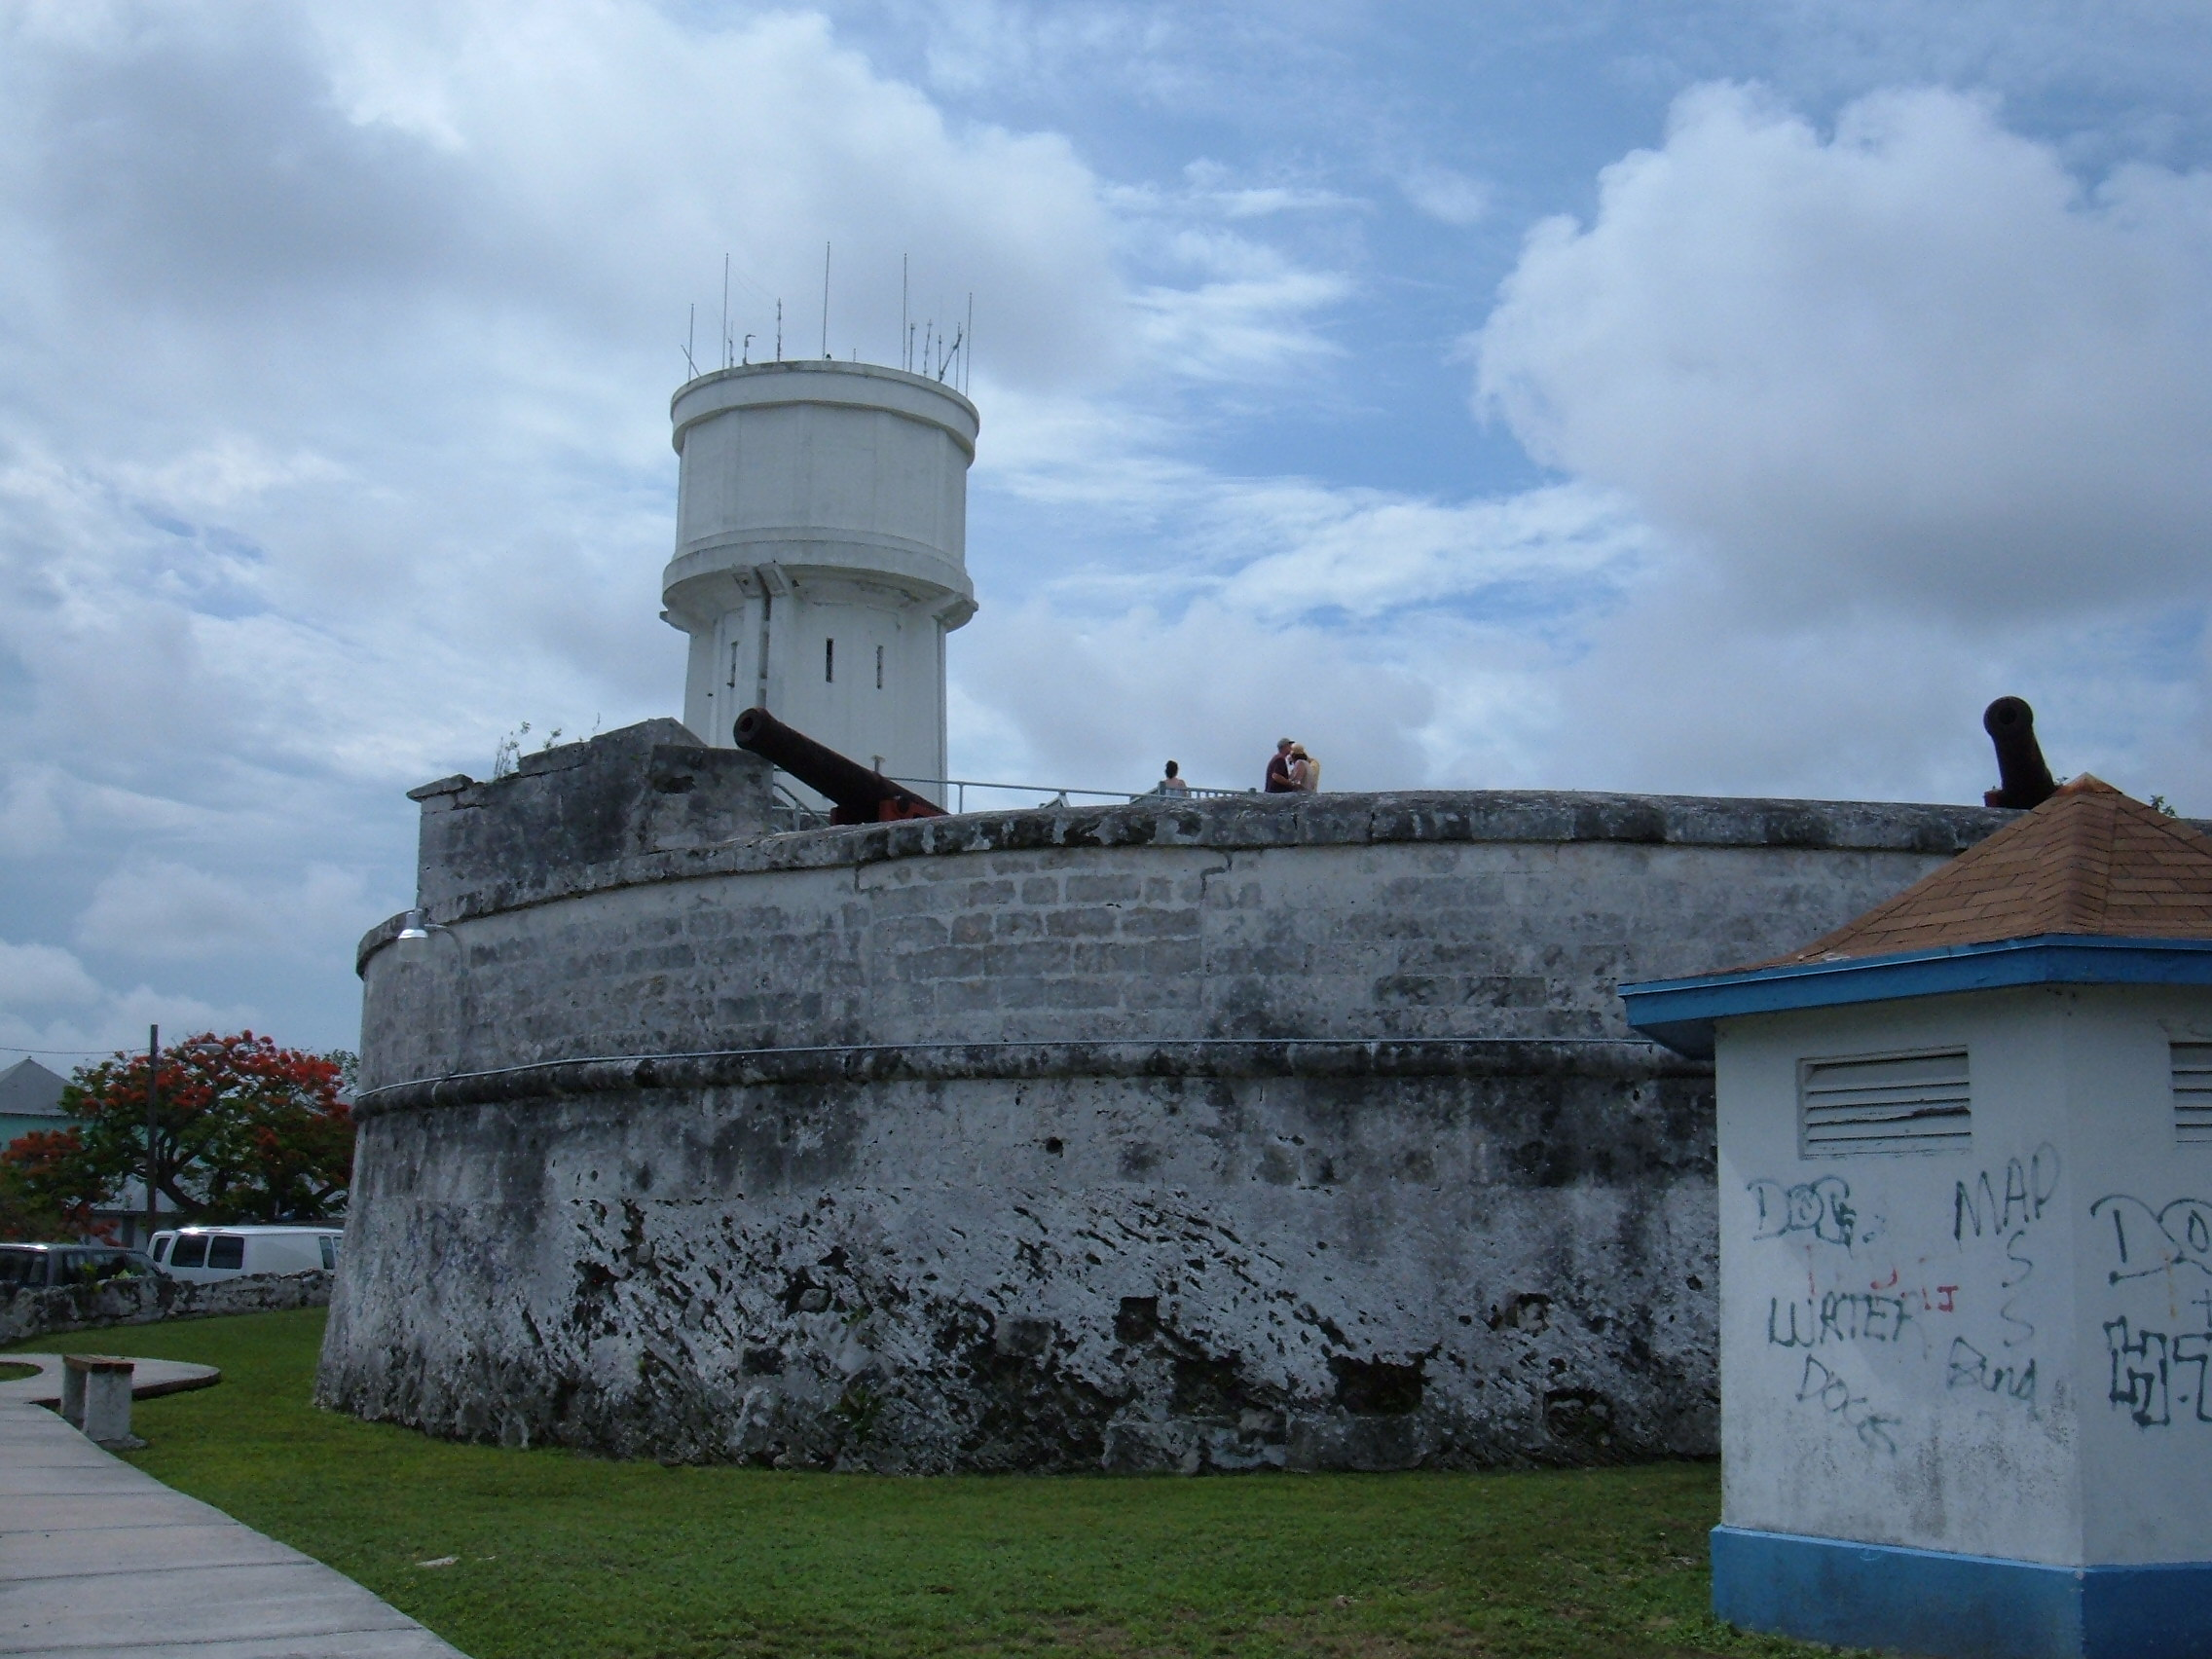 fincastle dating Dating back to the late 18th century, fort fincastle is named after viscount fincastle (also known as lord dunmore) who constructed this fort to protect the nassau harbour from pirate.